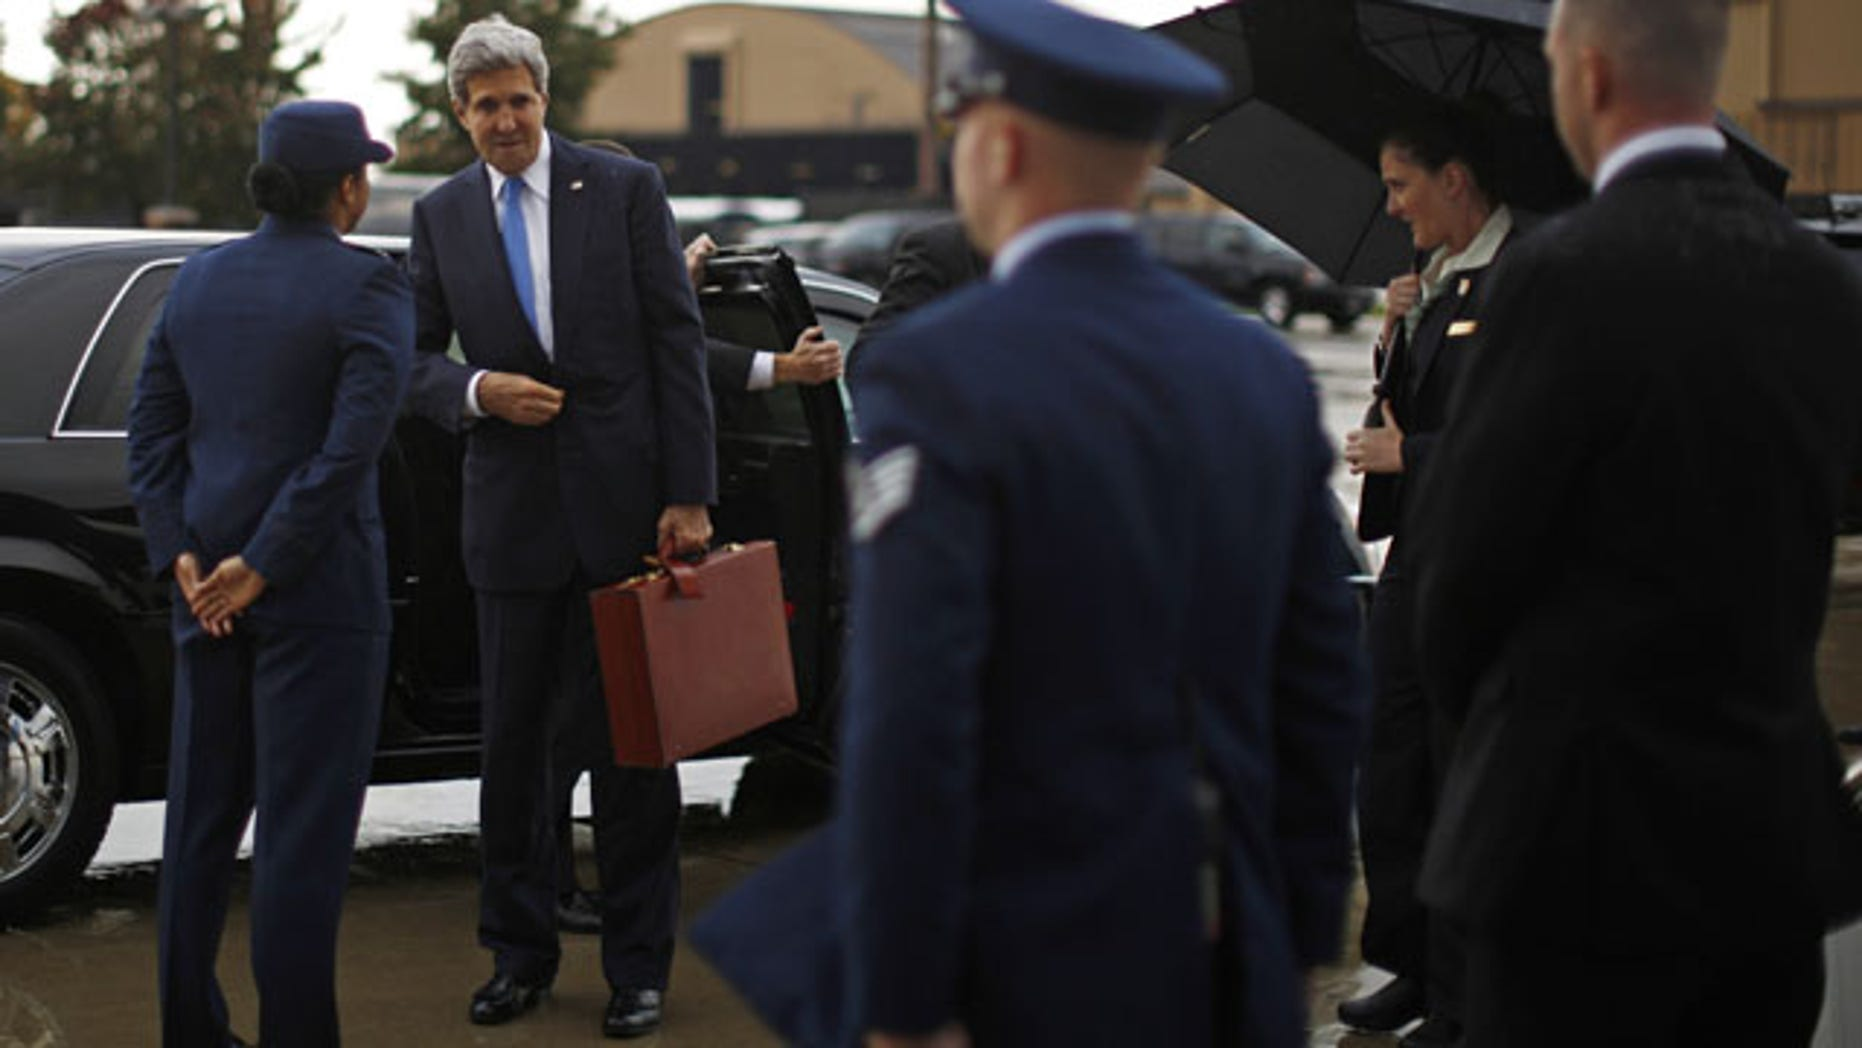 November 2, 1963: U.S. Secretary of State John Kerry prepares to board his aircraft at Andrews Air Force Base near Washington. Kerry is in Cairo pressing for reforms during the highest-level American visit to Egypt since the ouster of the country's first democratically elected president. The Egyptian military's removal of Mohammed Morsi in July led the U.S. to suspend hundreds of millions of dollars in aid. (AP Photo)